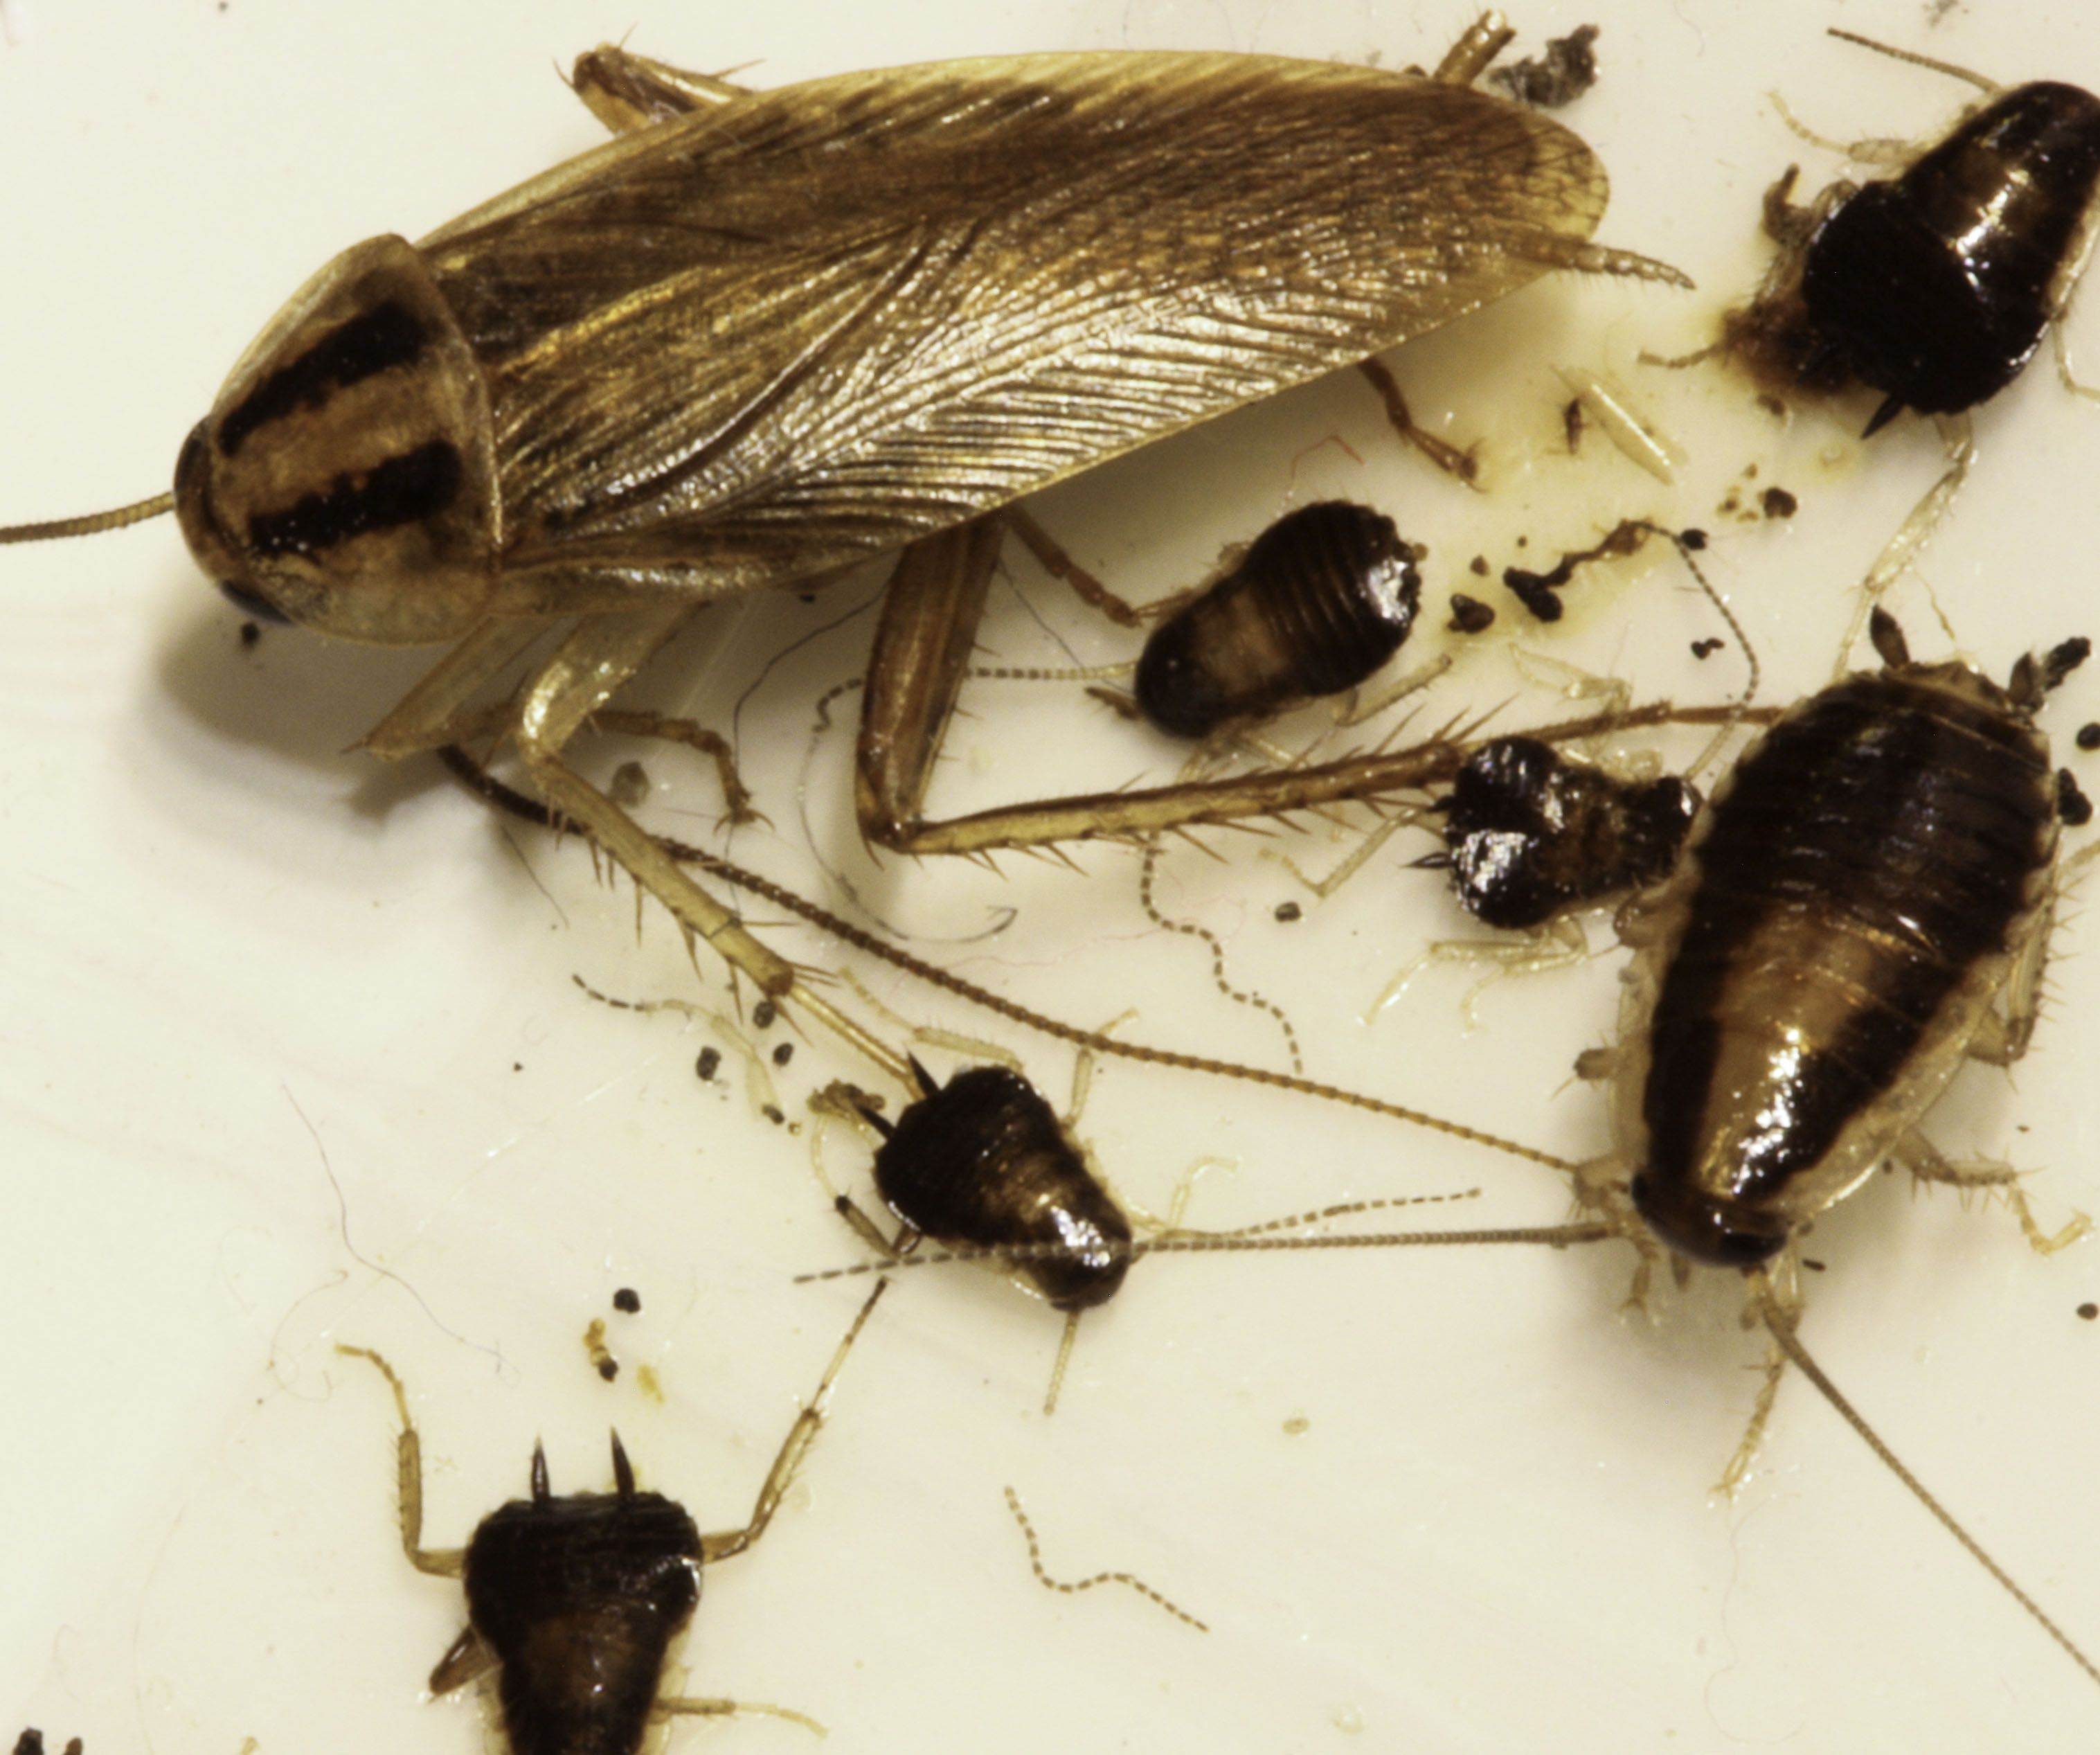 Do roaches crawl all over in your restaurant premise? Do